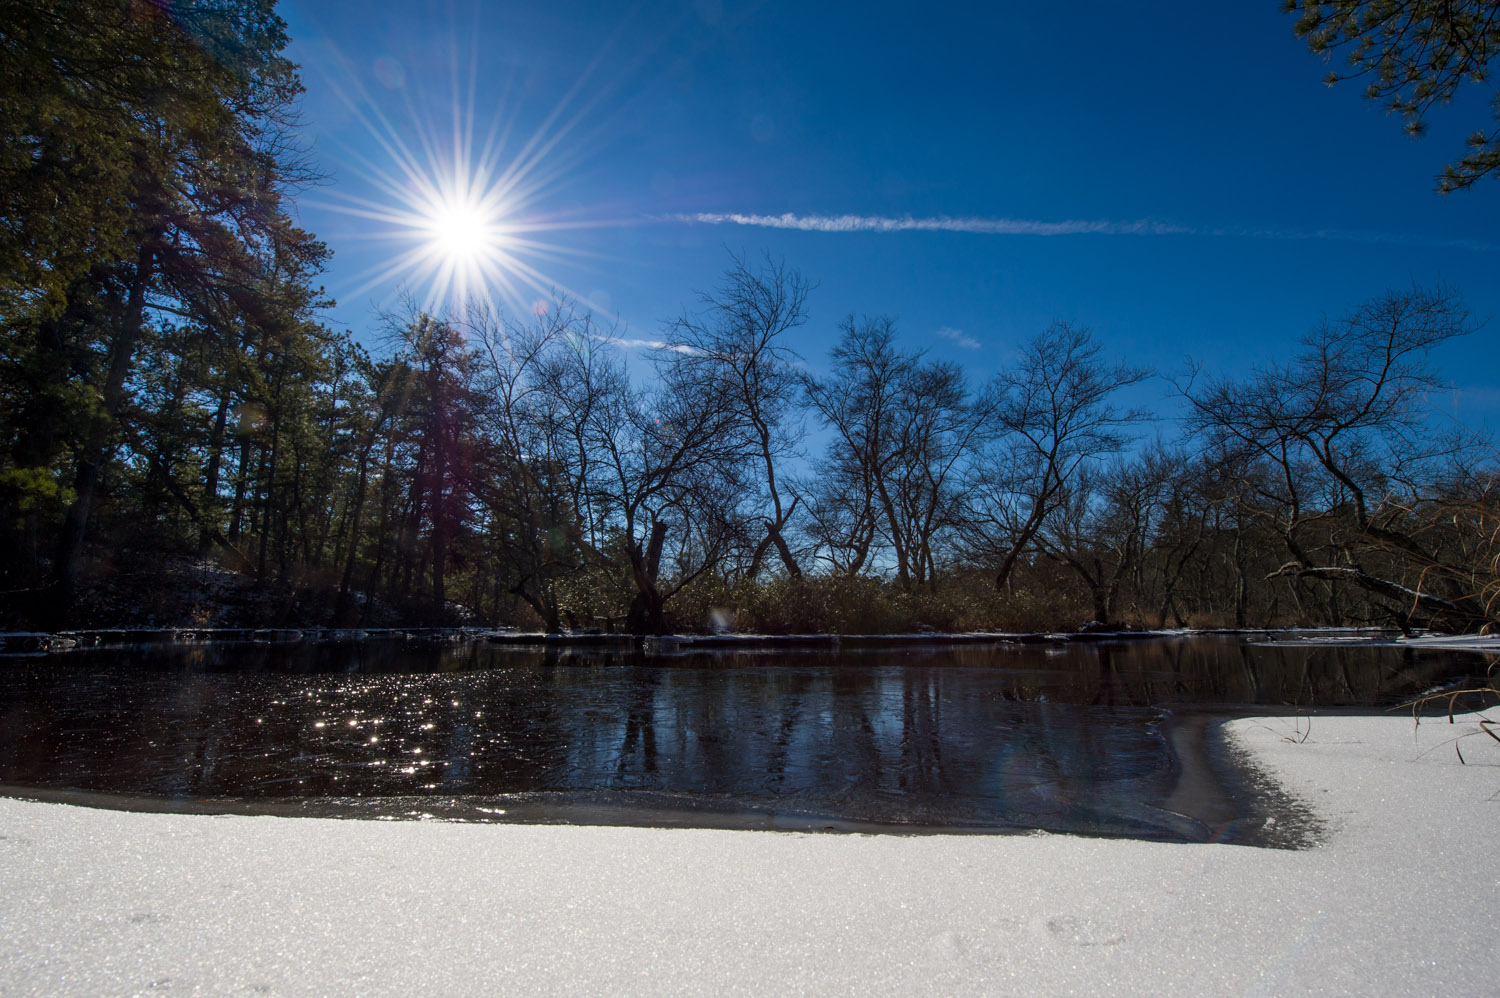 The Mullica River at Wharton State Forest in the NJ Pine Barrens.